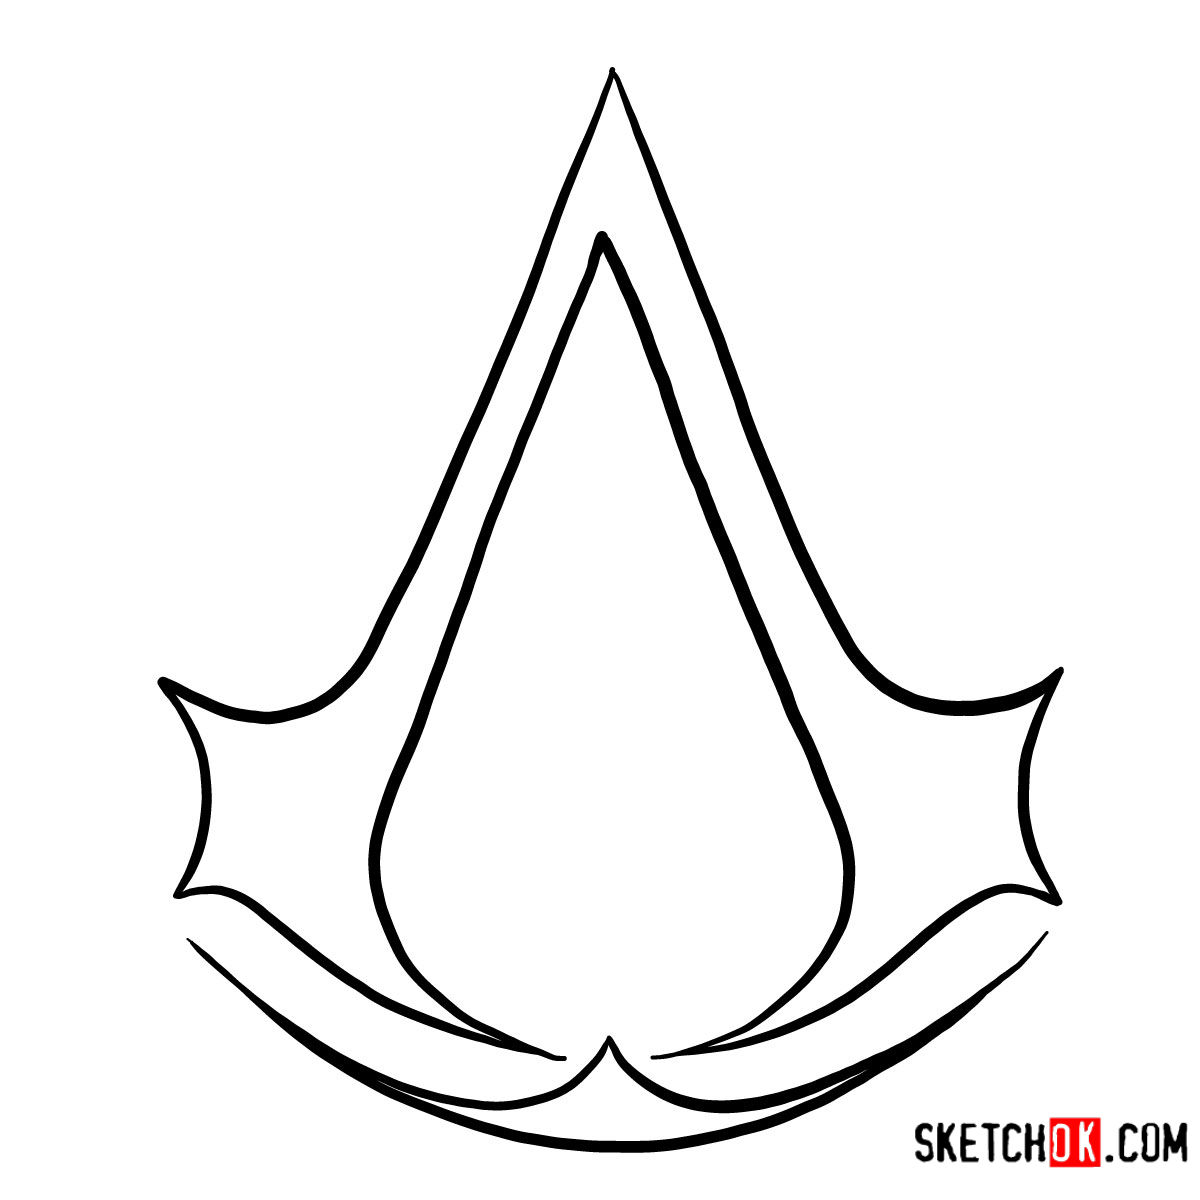 How To Draw The Logo Of Assassins Assassin S Creed Step By Step Drawing Tutorials